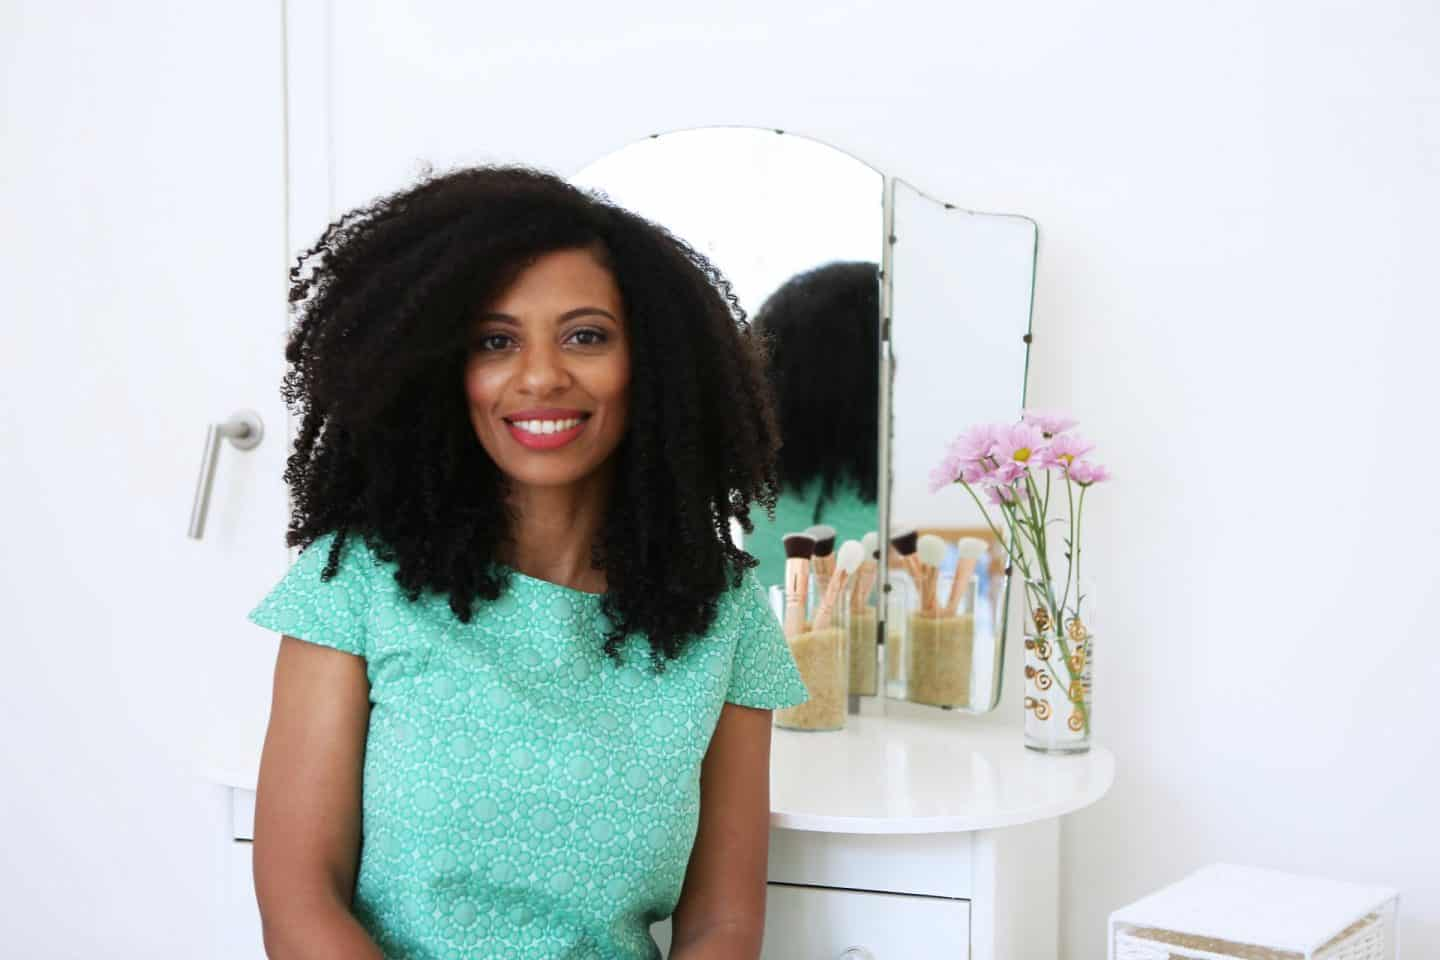 Beauty Maverick – making waves on the periphery of conventional beauty